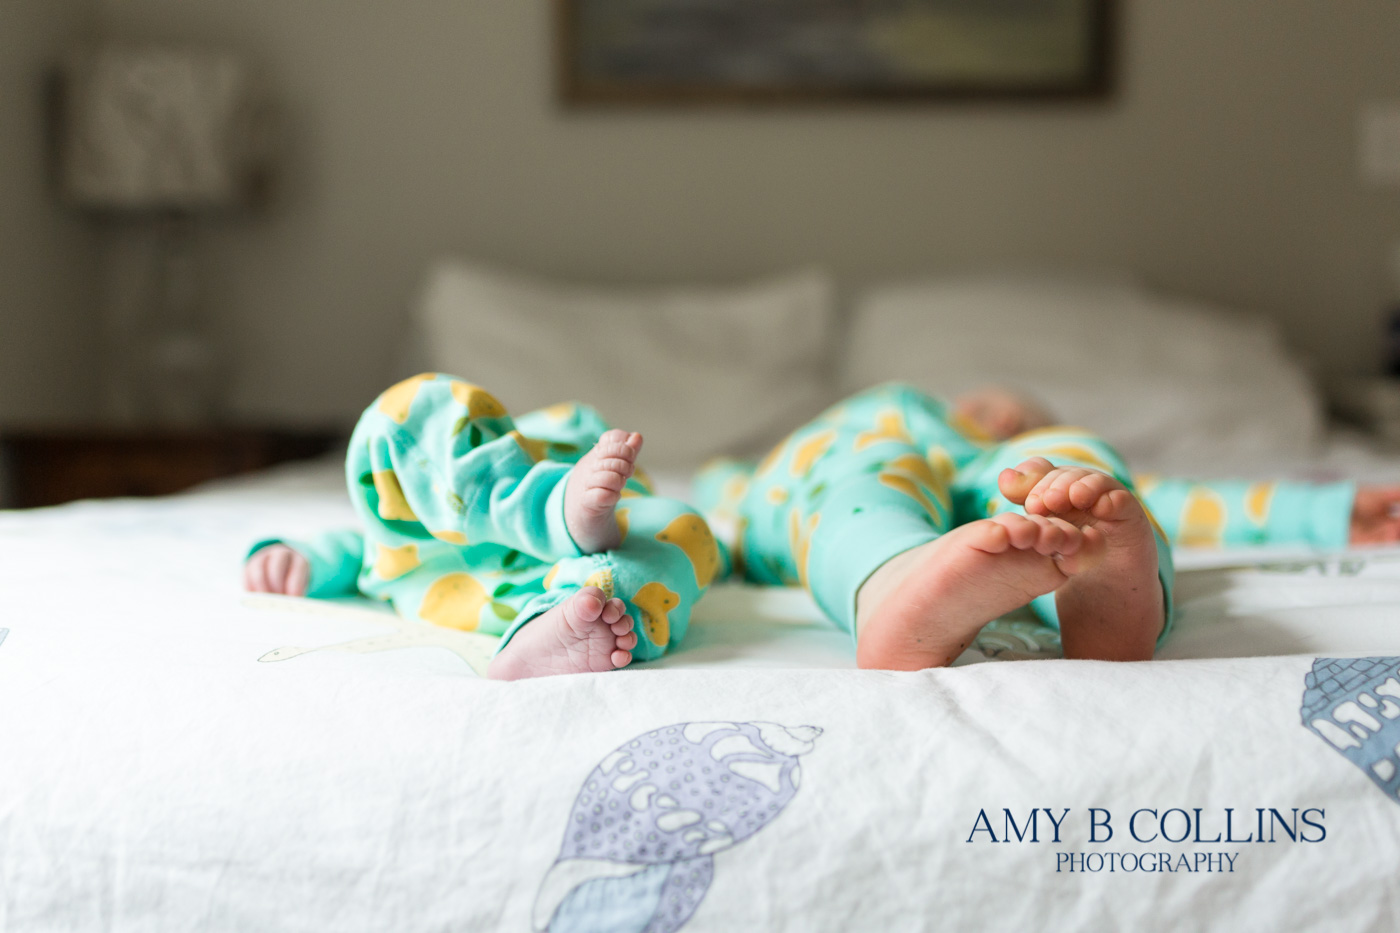 Amy_B_Collins_Photographer_Needham - 18.jpg